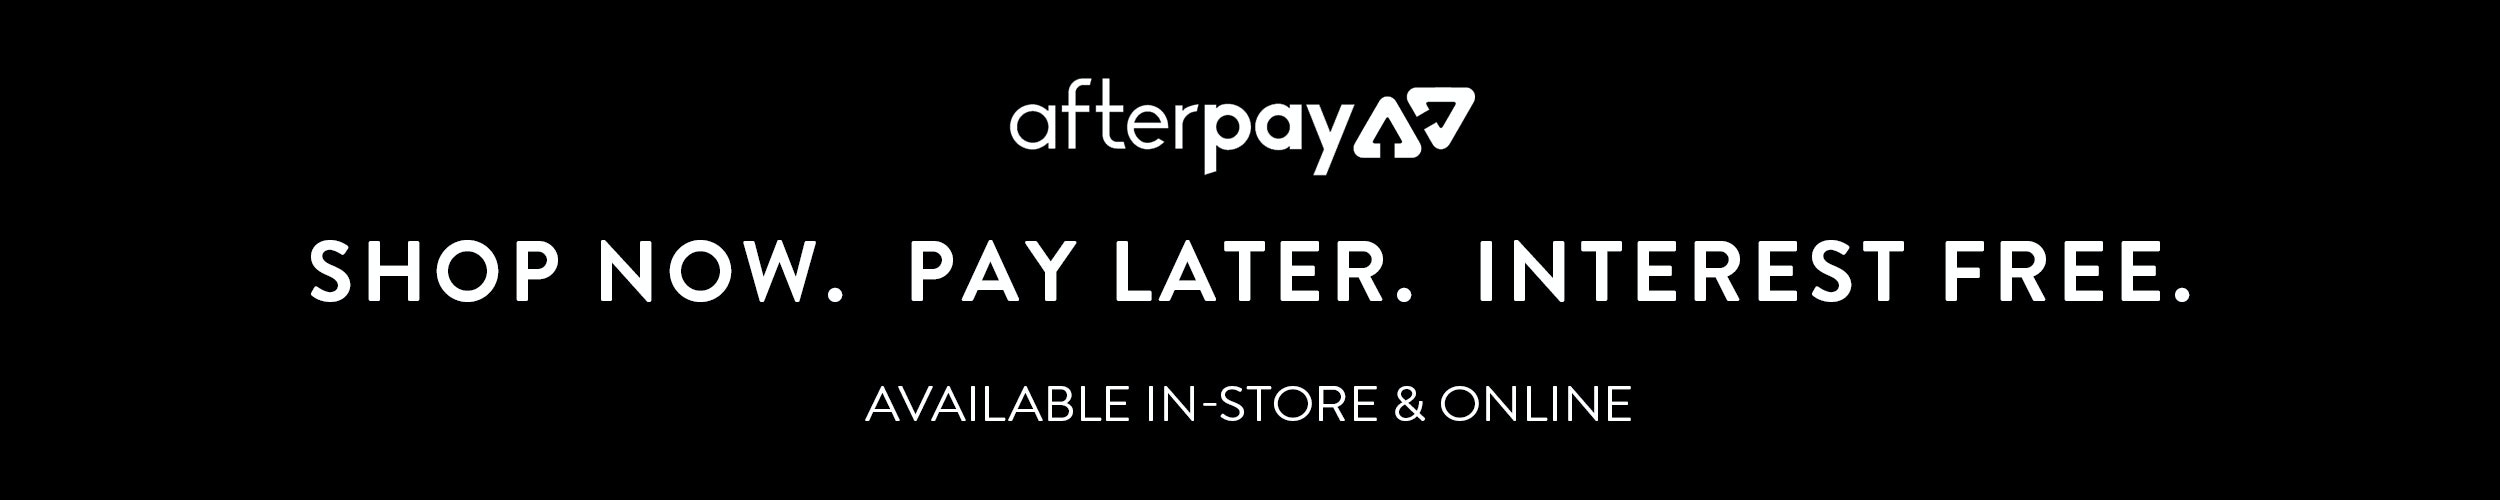 Find out about Afterpay at Tarocash - shop the latest Menswear now, pay later